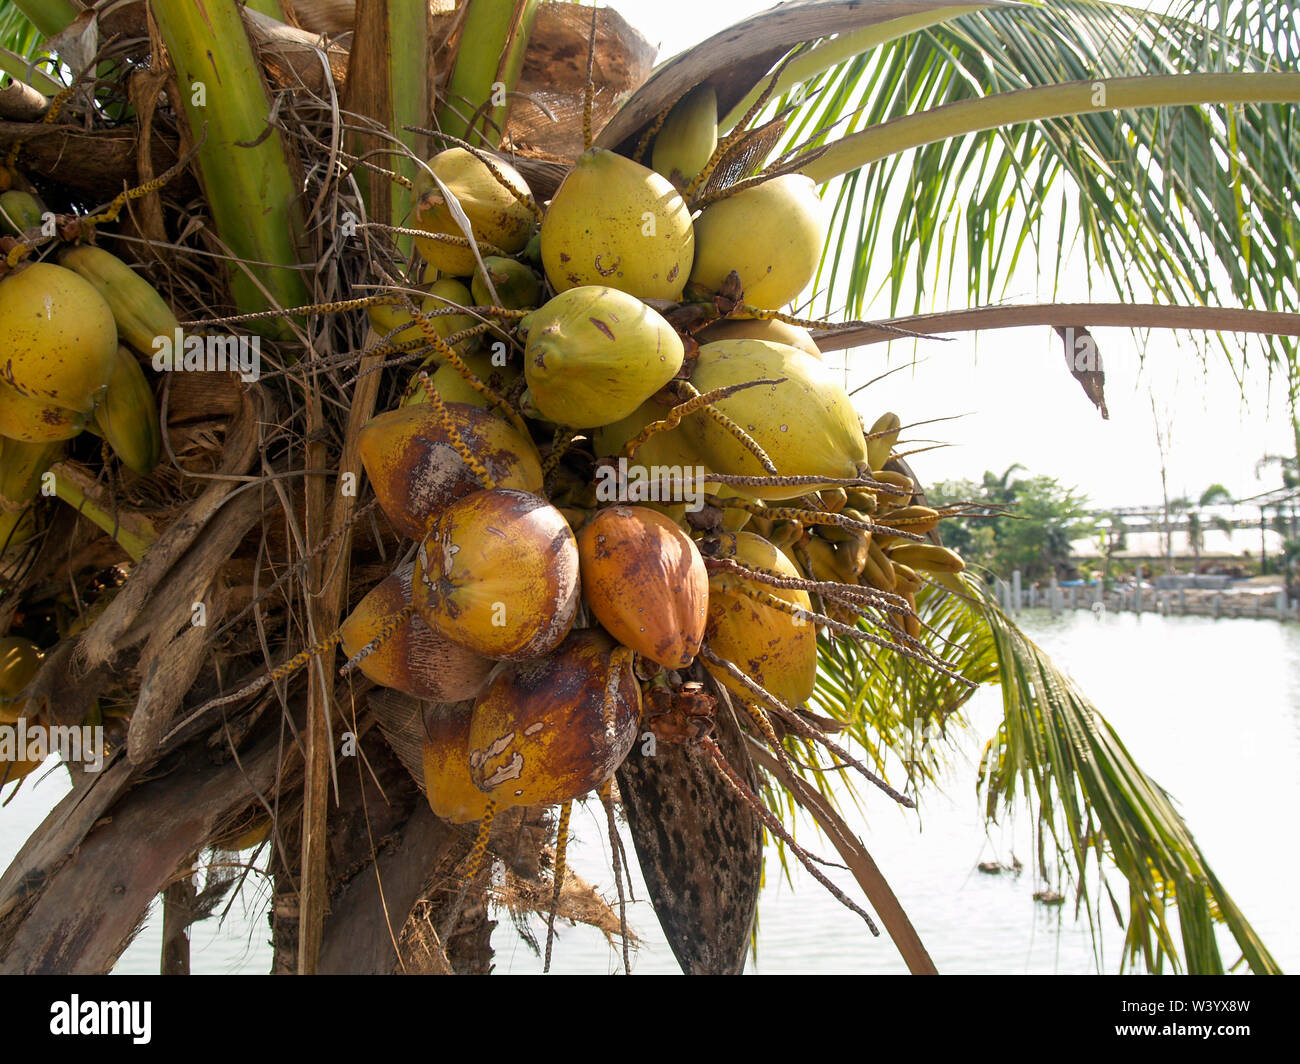 Coconut trees that are fruiting and have a pool background - Stock Image